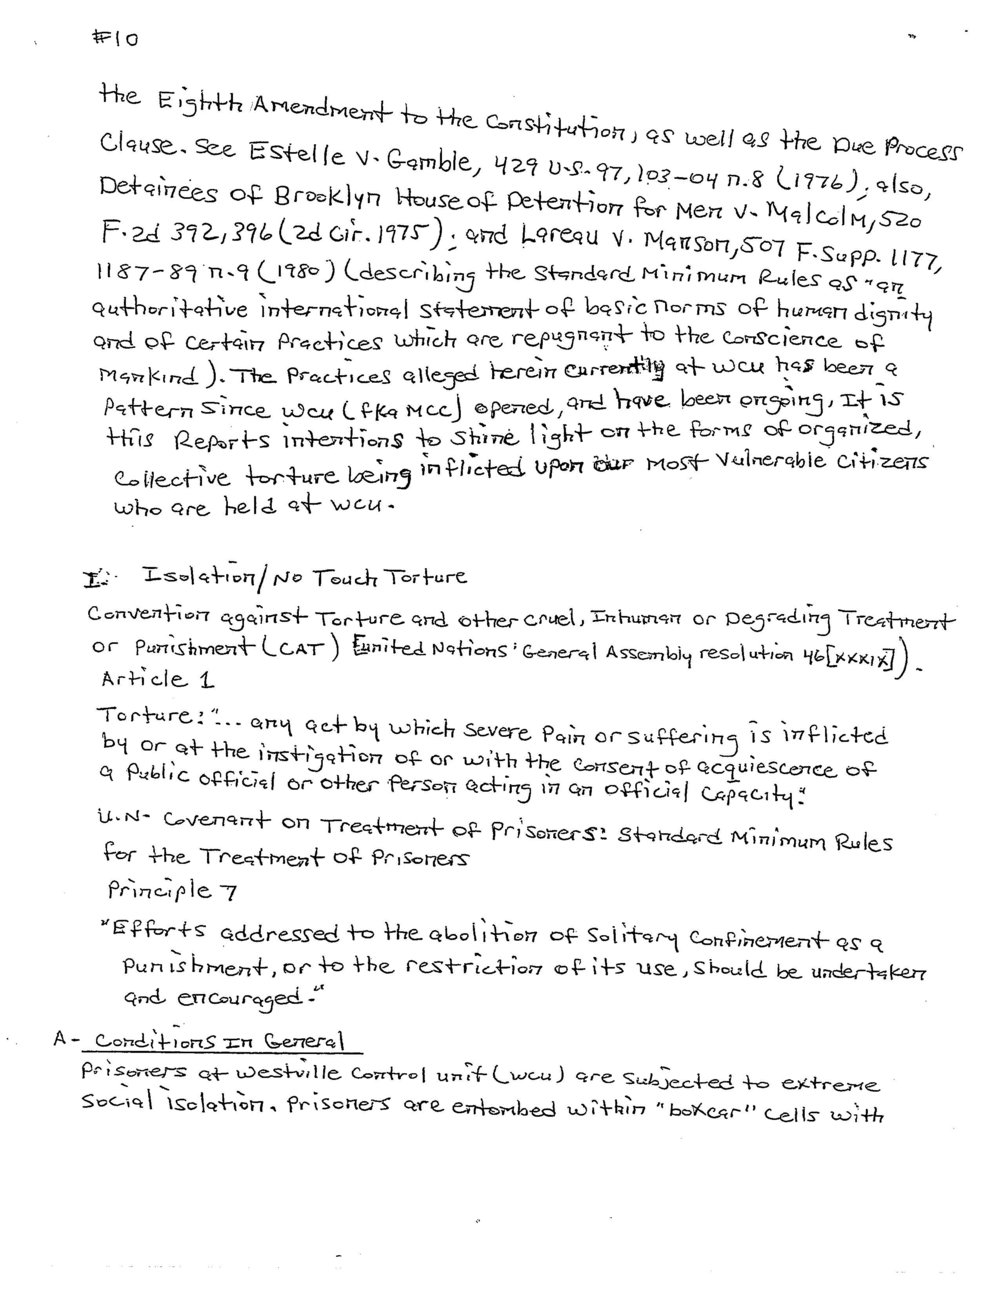 Human Rights Report on Westville_Page_10.jpg